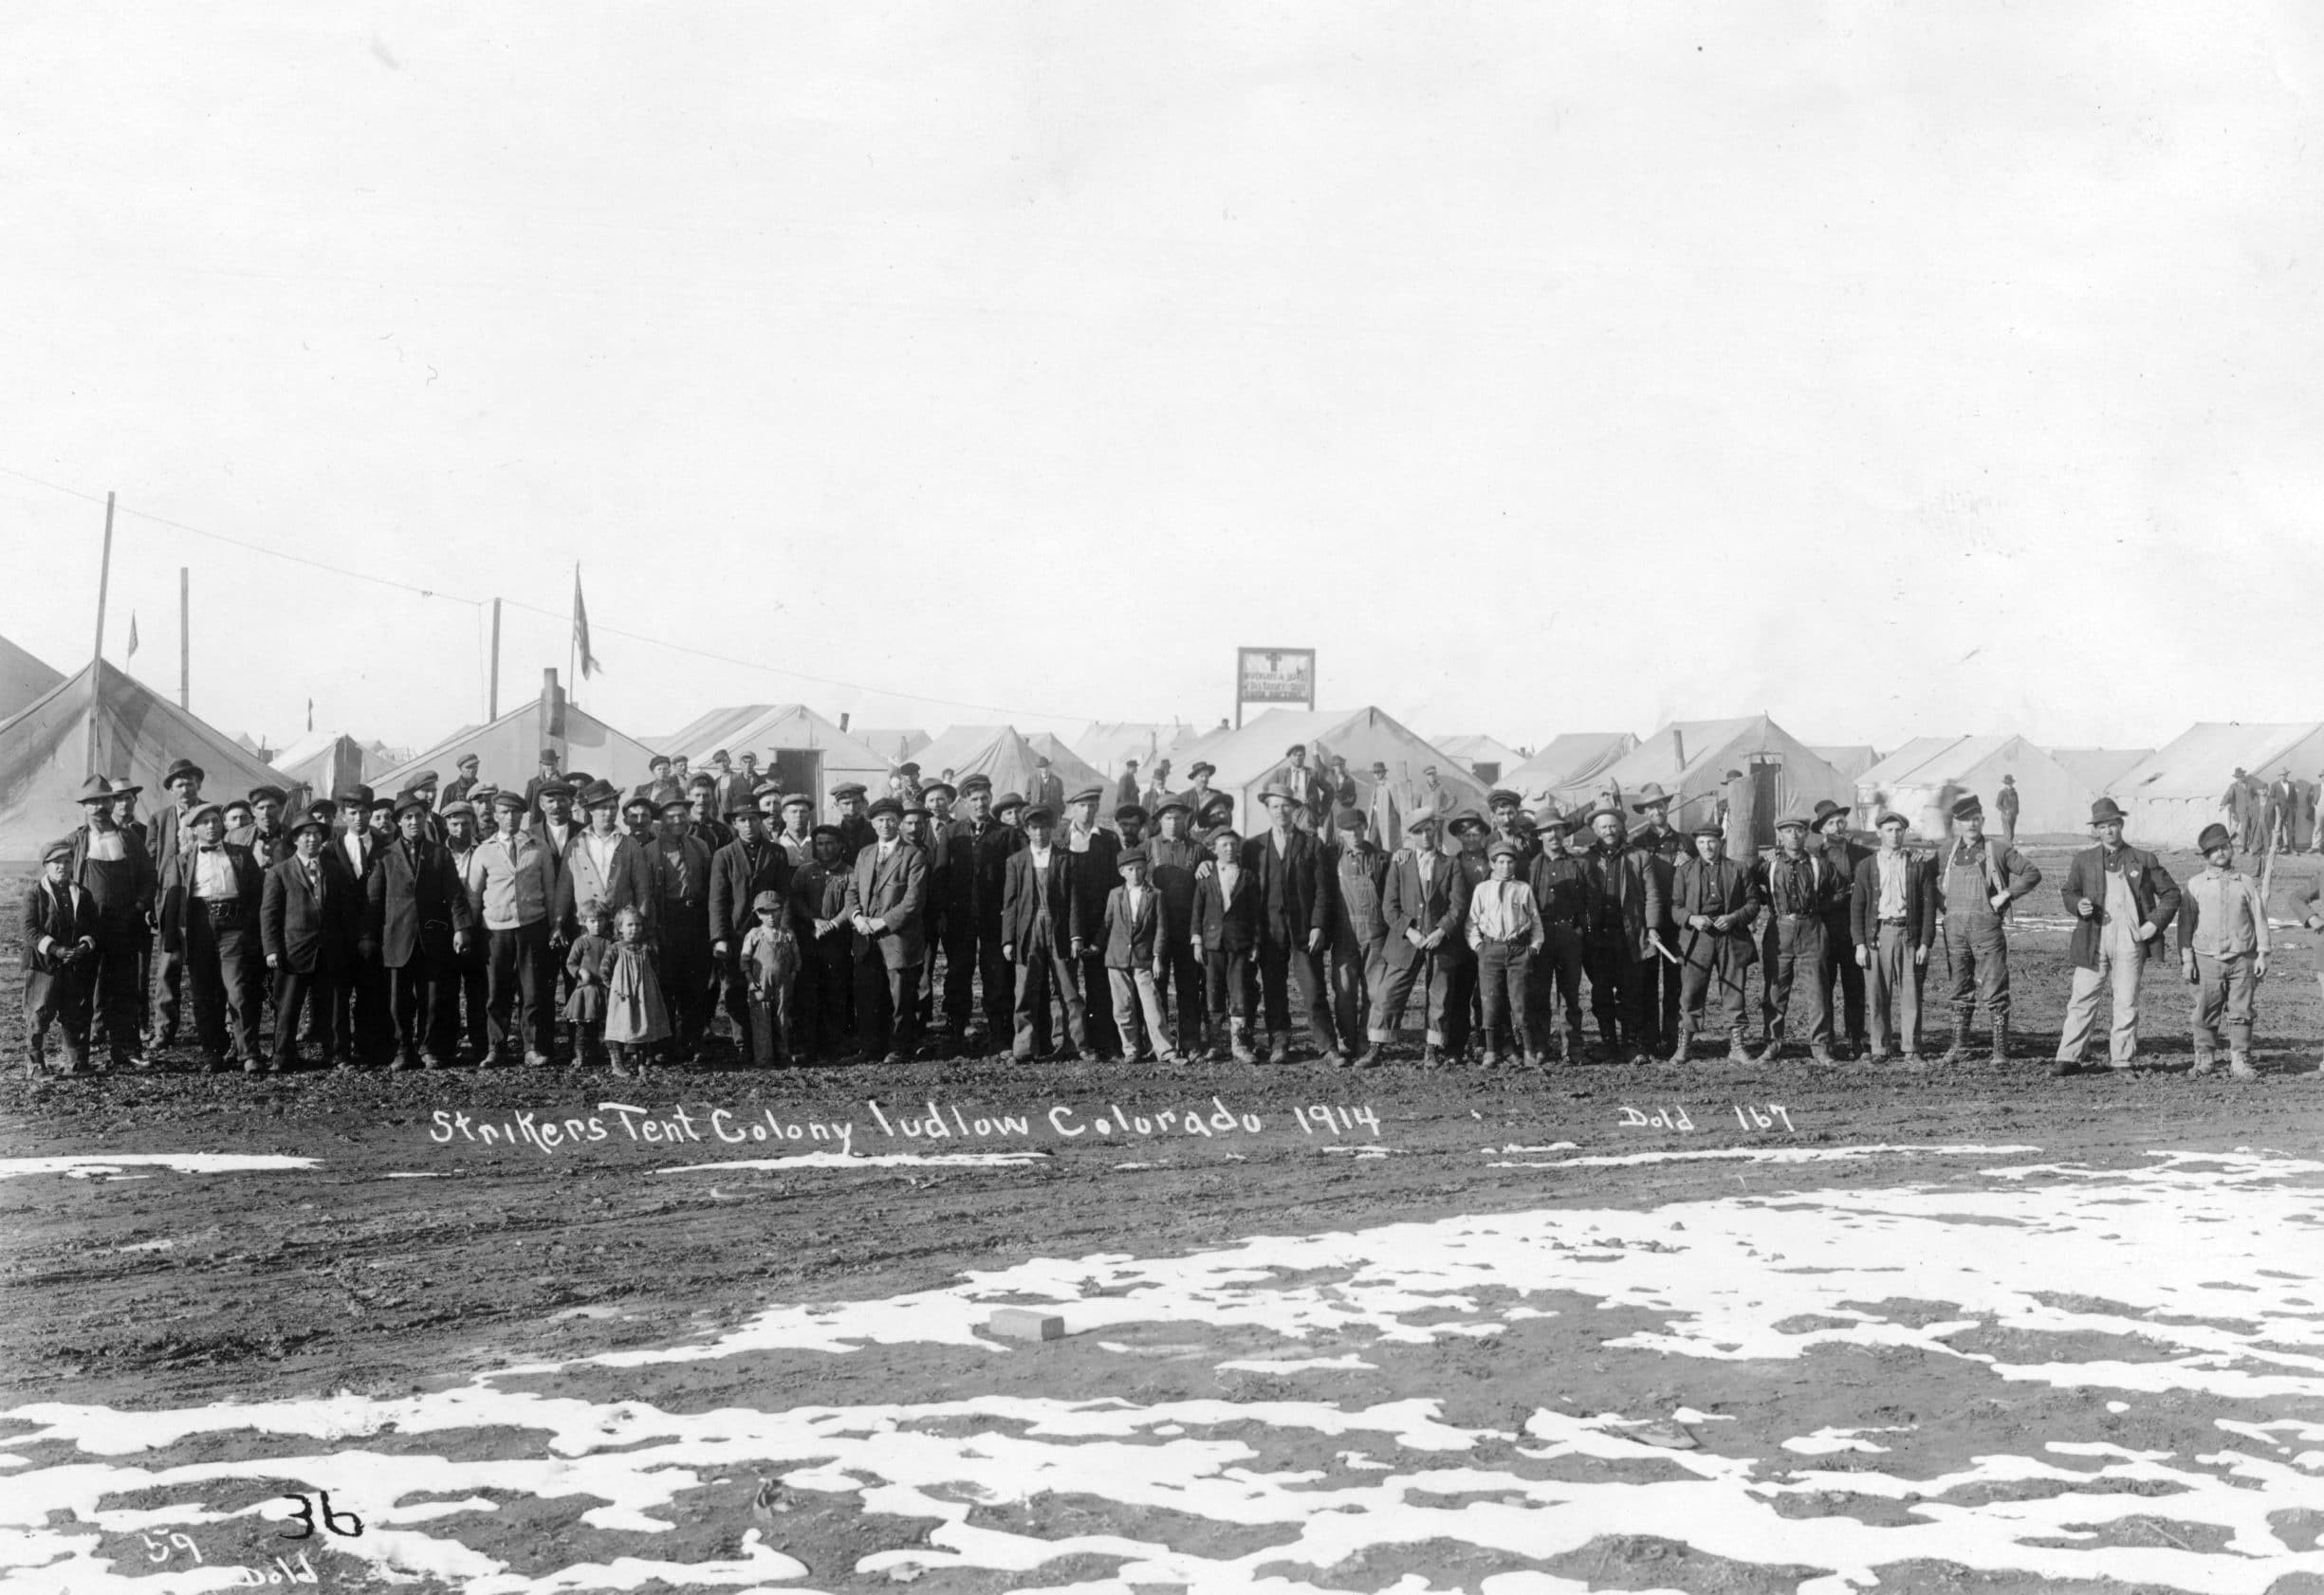 """Portrait of men, boys, and girls at the UMW camp for coal miners on strike against CF&I in Ludlow, Las Animas County, Colorado; sign on canvas tent behind the crowd reads: """"Dispensary and office of Drs. Harvey and Davis Union Doctors."""" Image from 1914. Photo: Dold, Lewis R. Public Domain."""